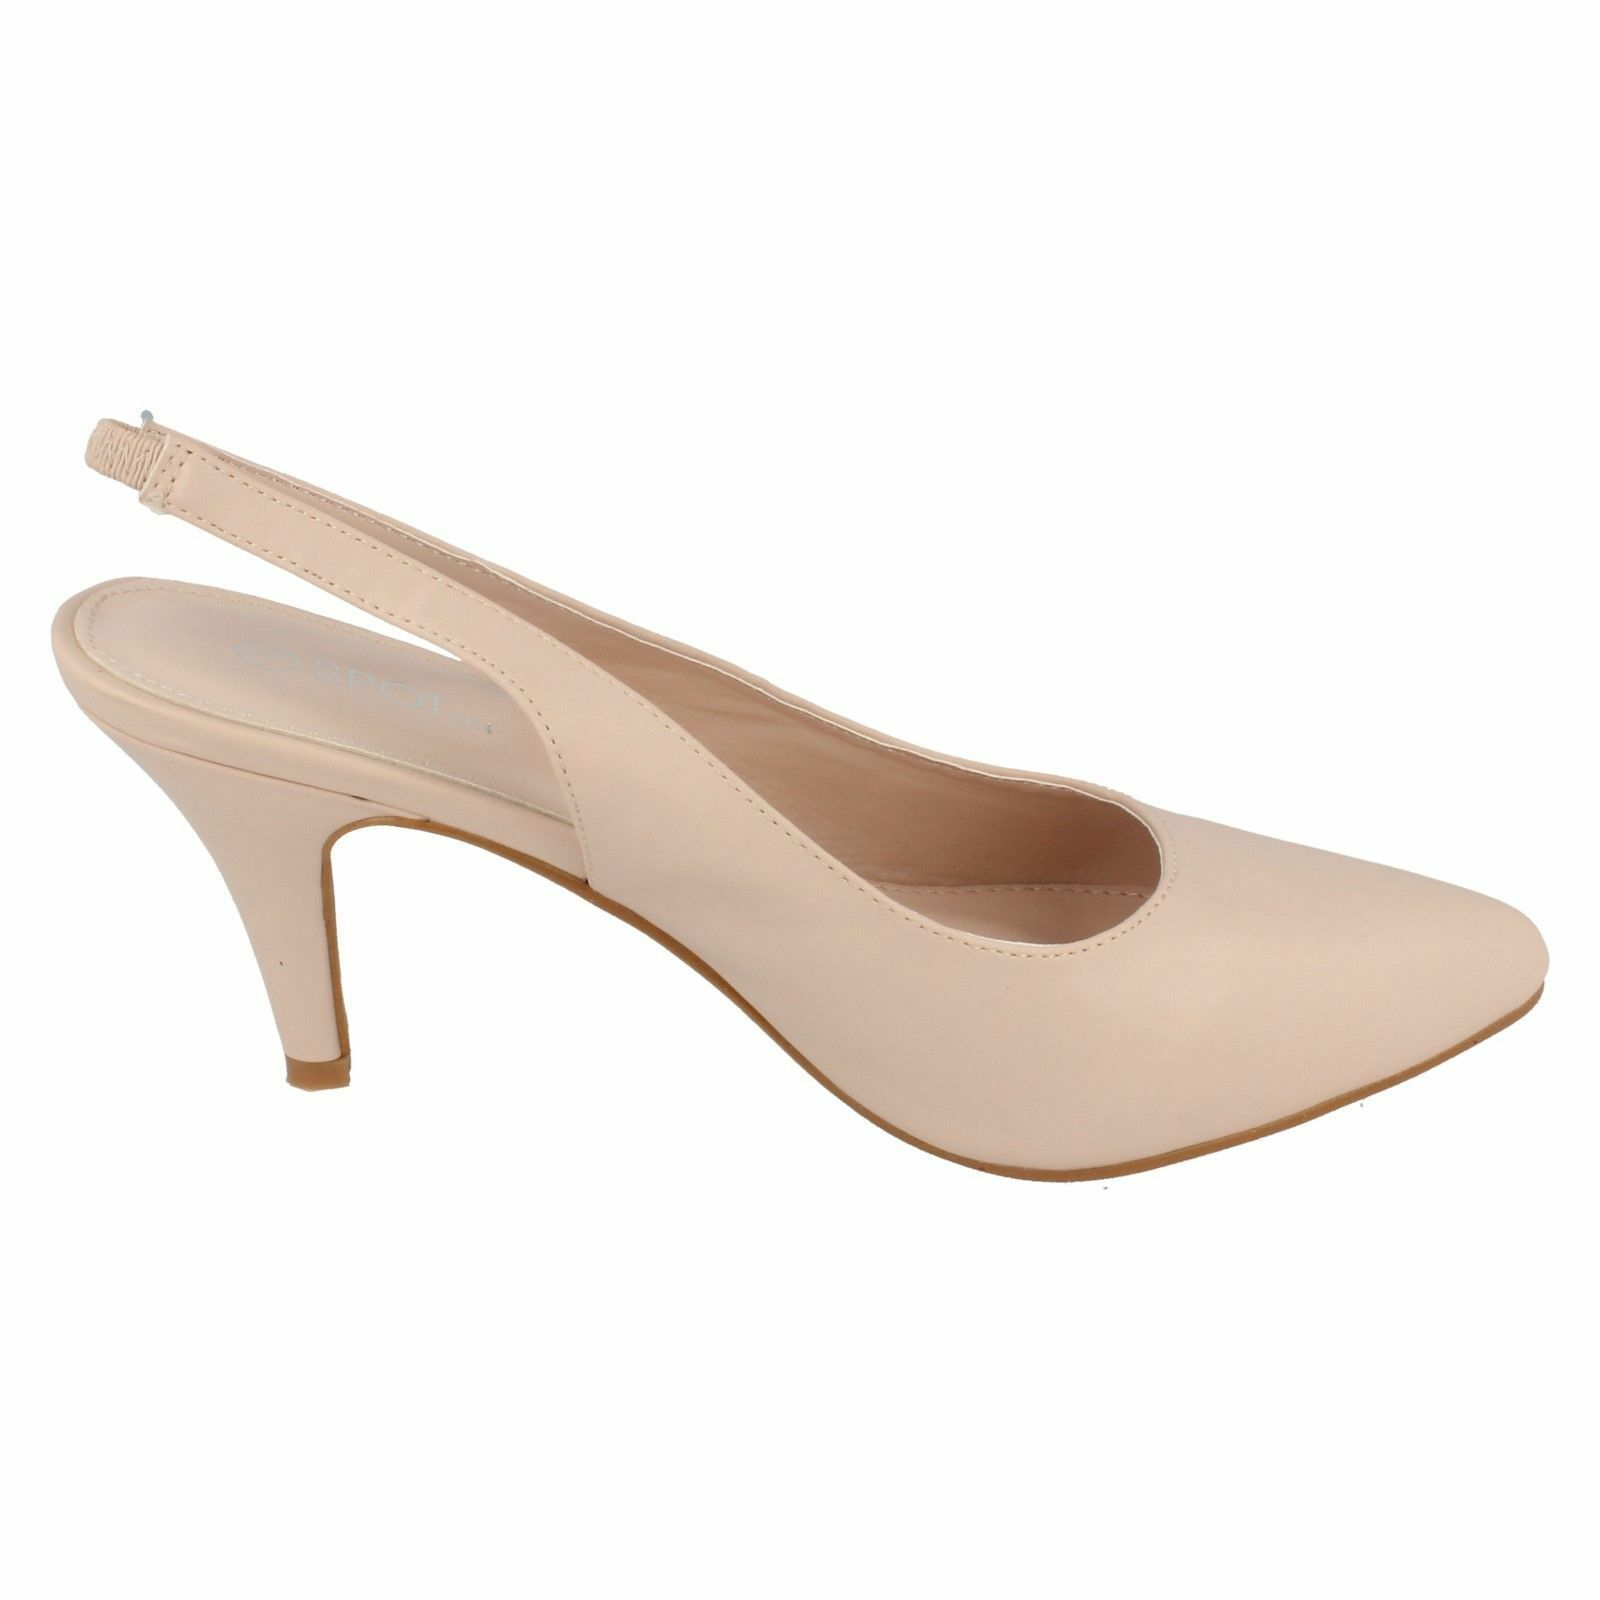 558f6327db11 Ladies Spot on Mid Heel Slingback Court Shoes F9987 Nude (ivory) UK 7  Standard for sale online